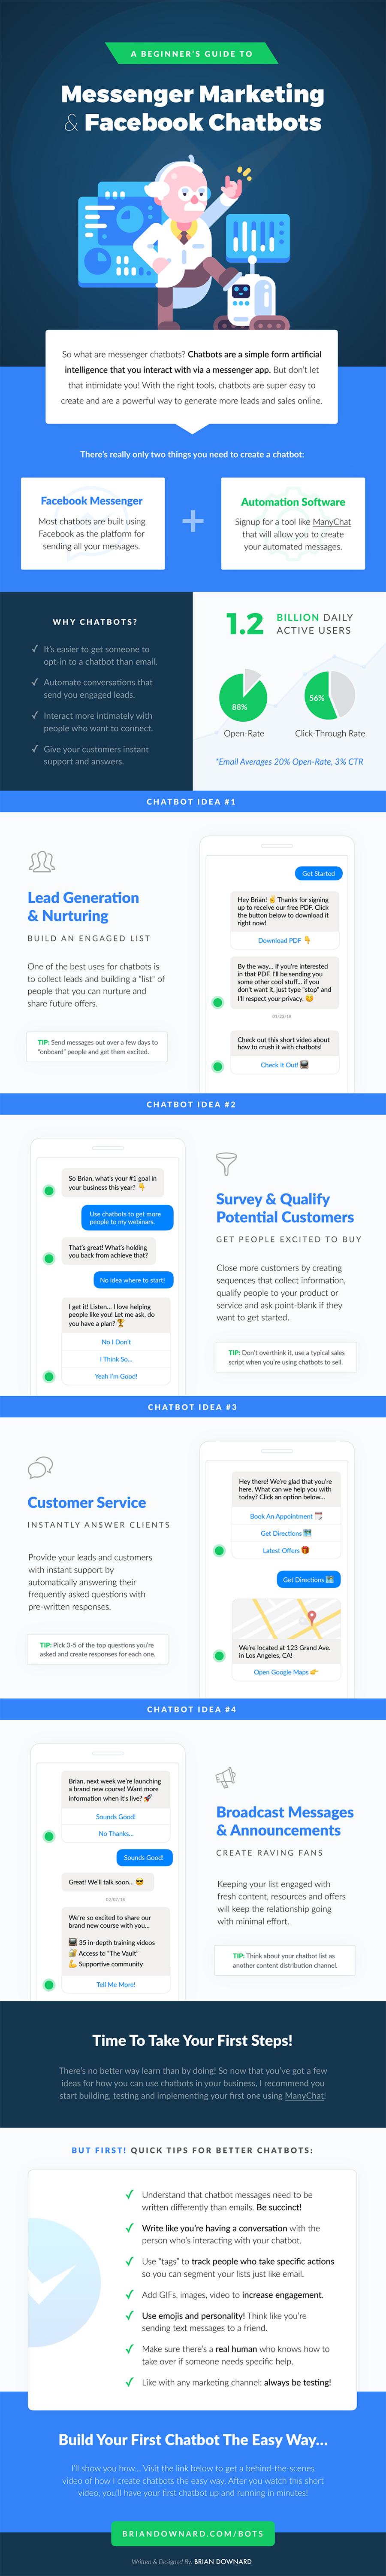 Infographic provides an overview of the how and why of Messenger chatbots